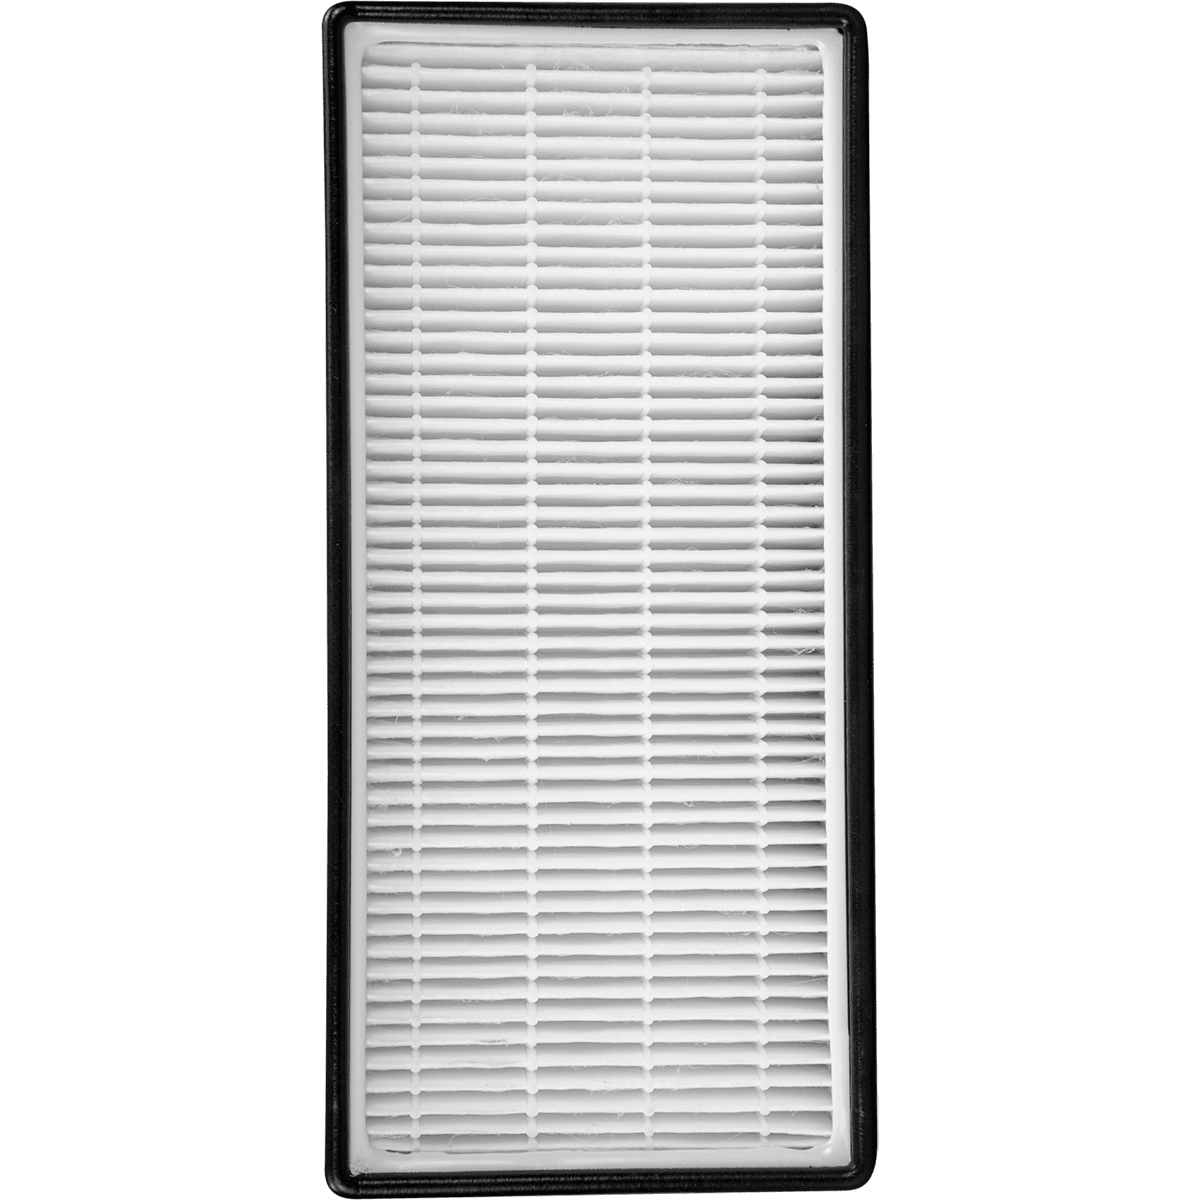 Master Brands HK True HEPA Filter for Whirlpool Tower Air Purifier wh6367